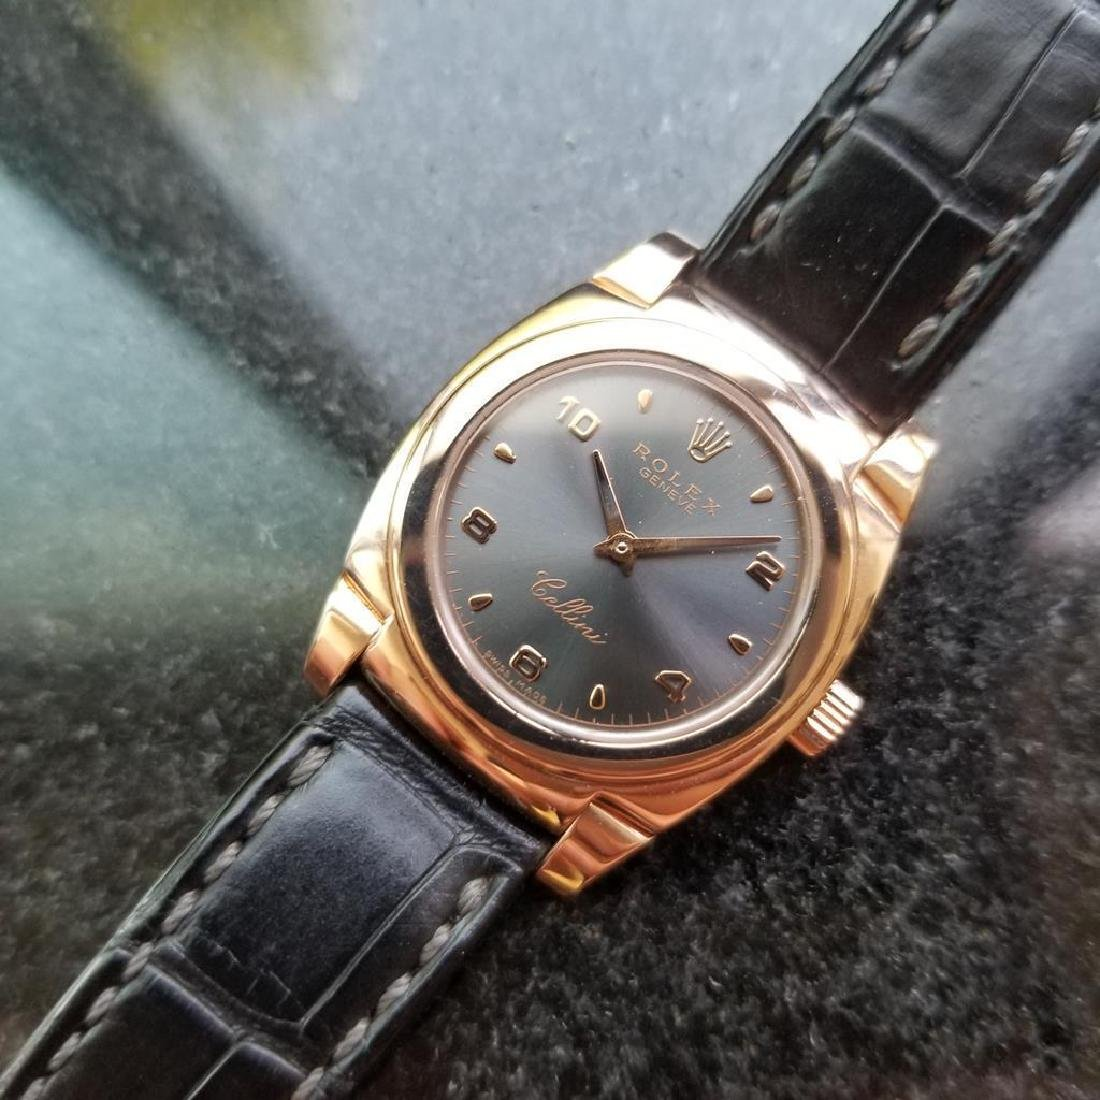 ROLEX 18K Rose Gold Ladies Cellini Cestello ref. 5310 - 3